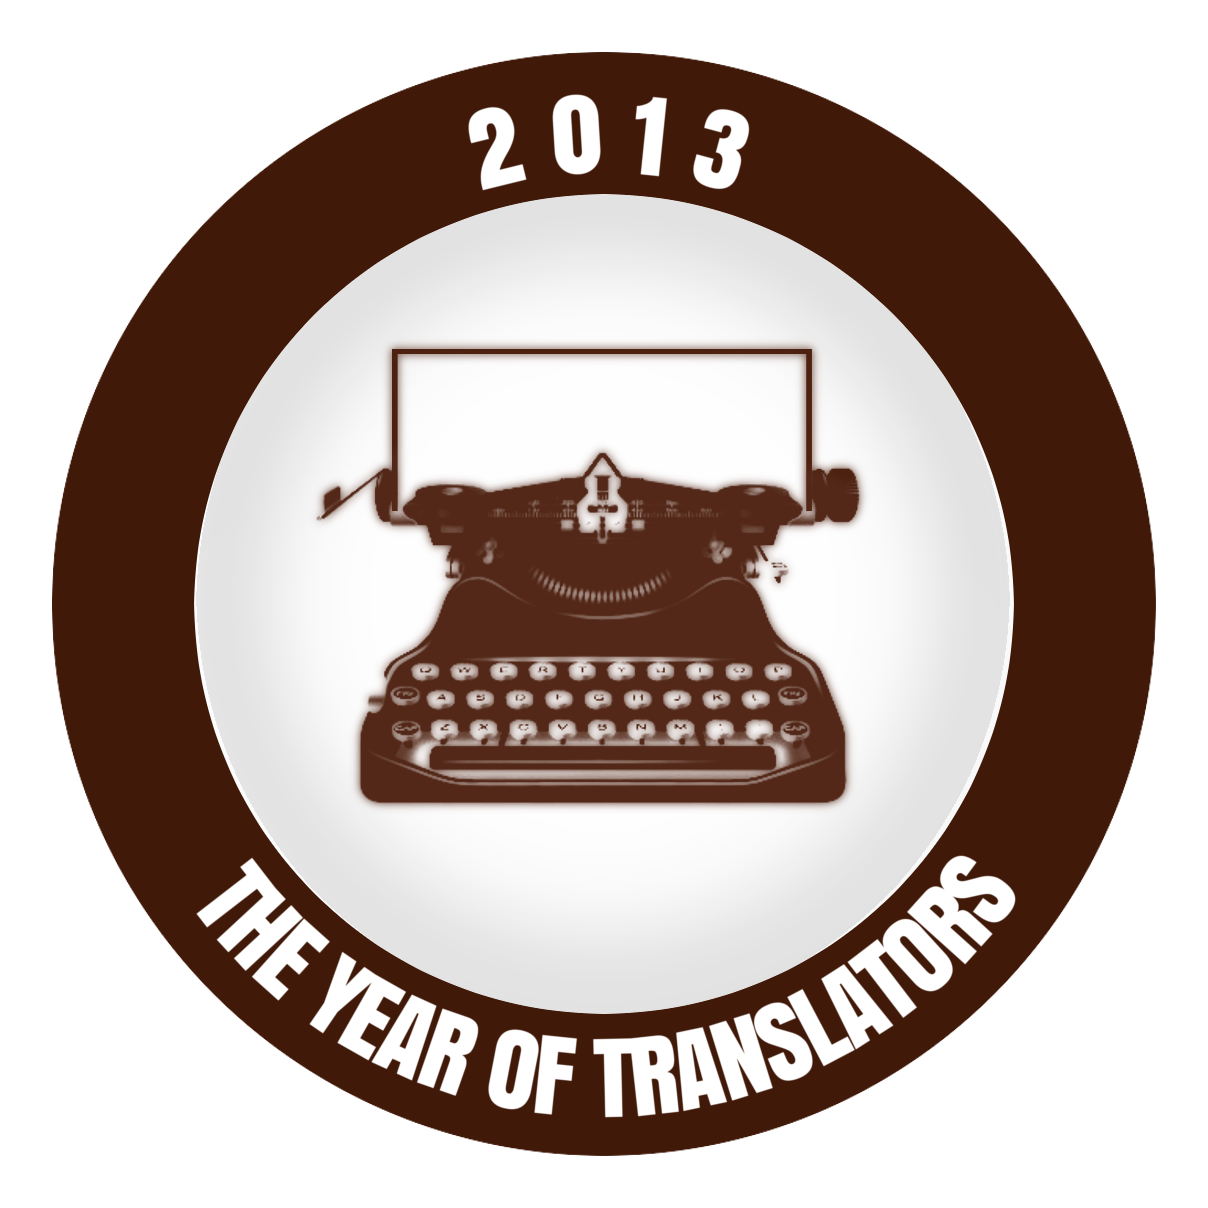 2013 - The Year of Translators